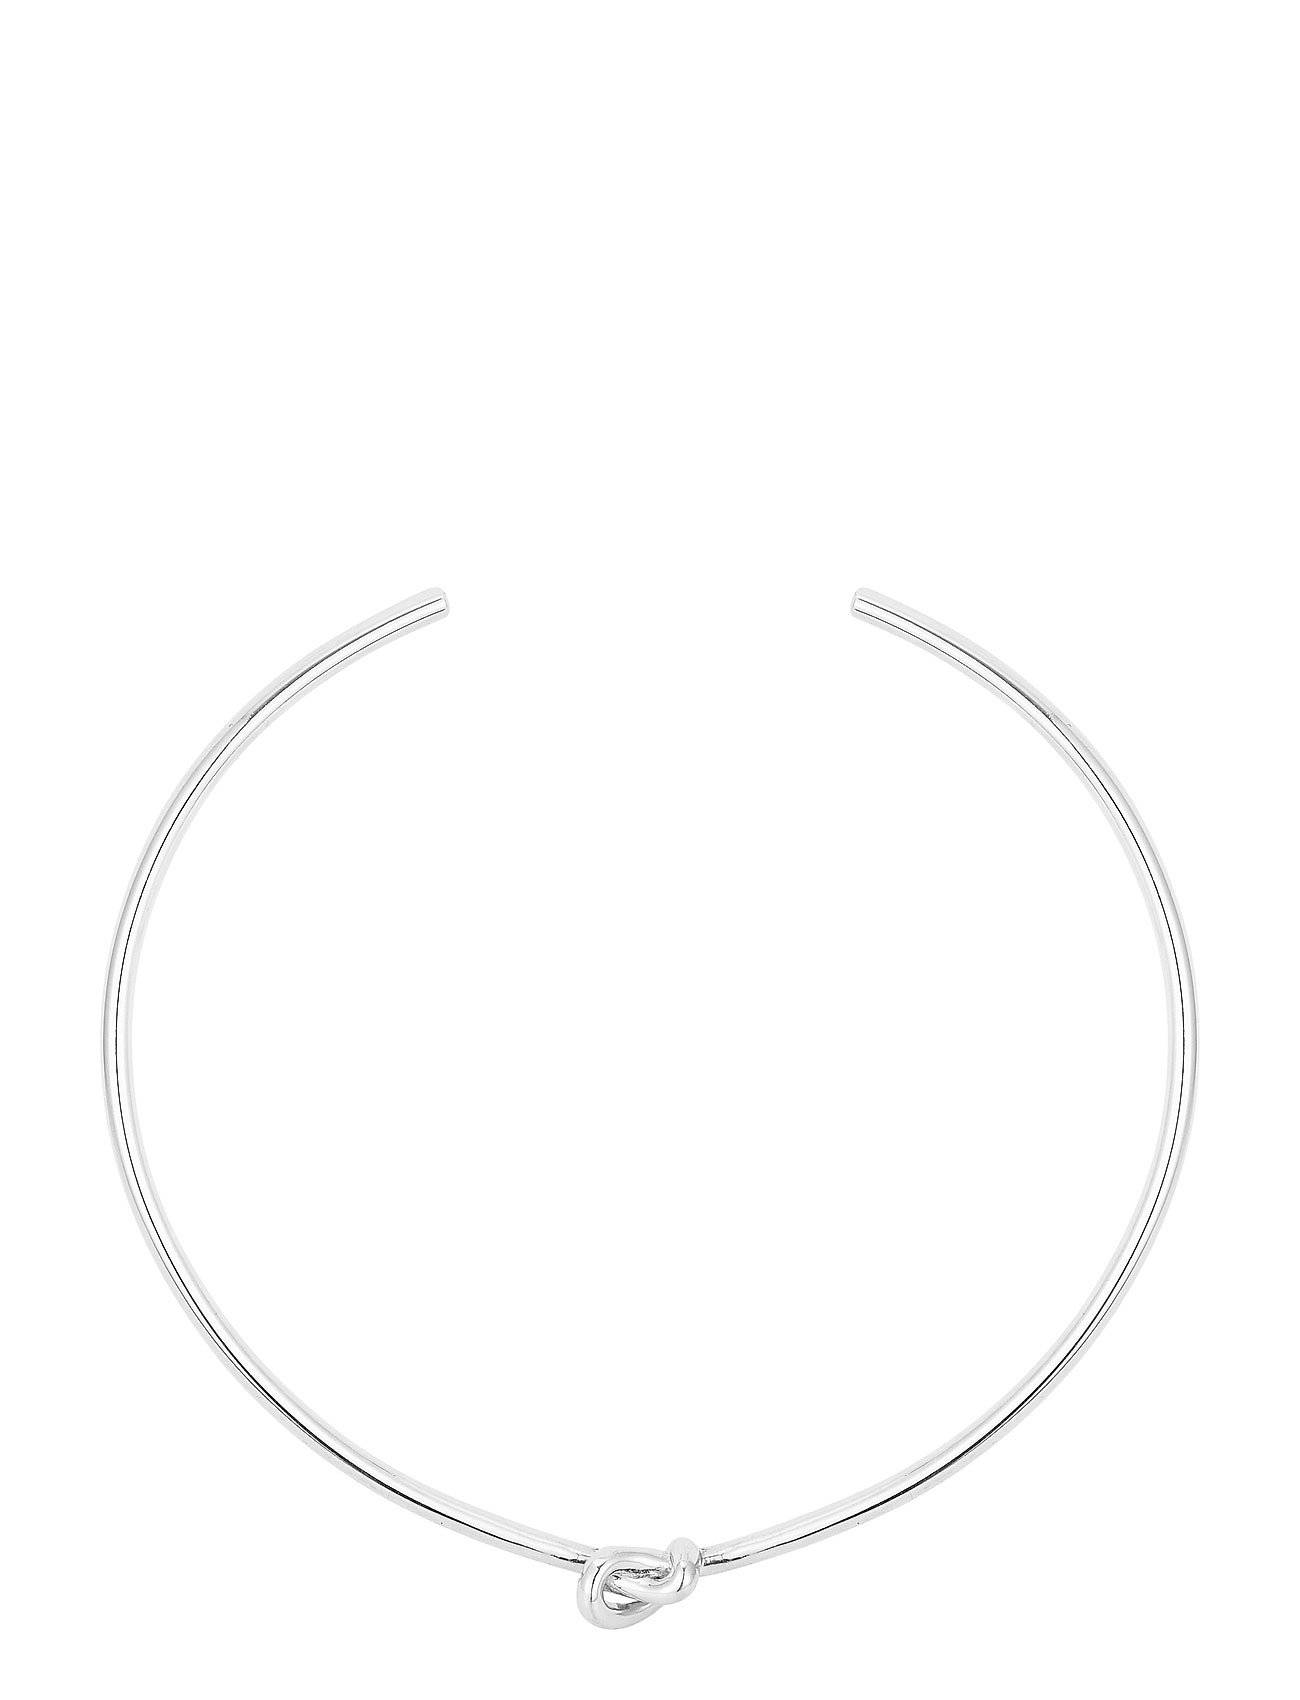 SOPHIE by SOPHIE Knot Choker Accessories Jewellery Necklaces Dainty Necklaces Hopea SOPHIE By SOPHIE